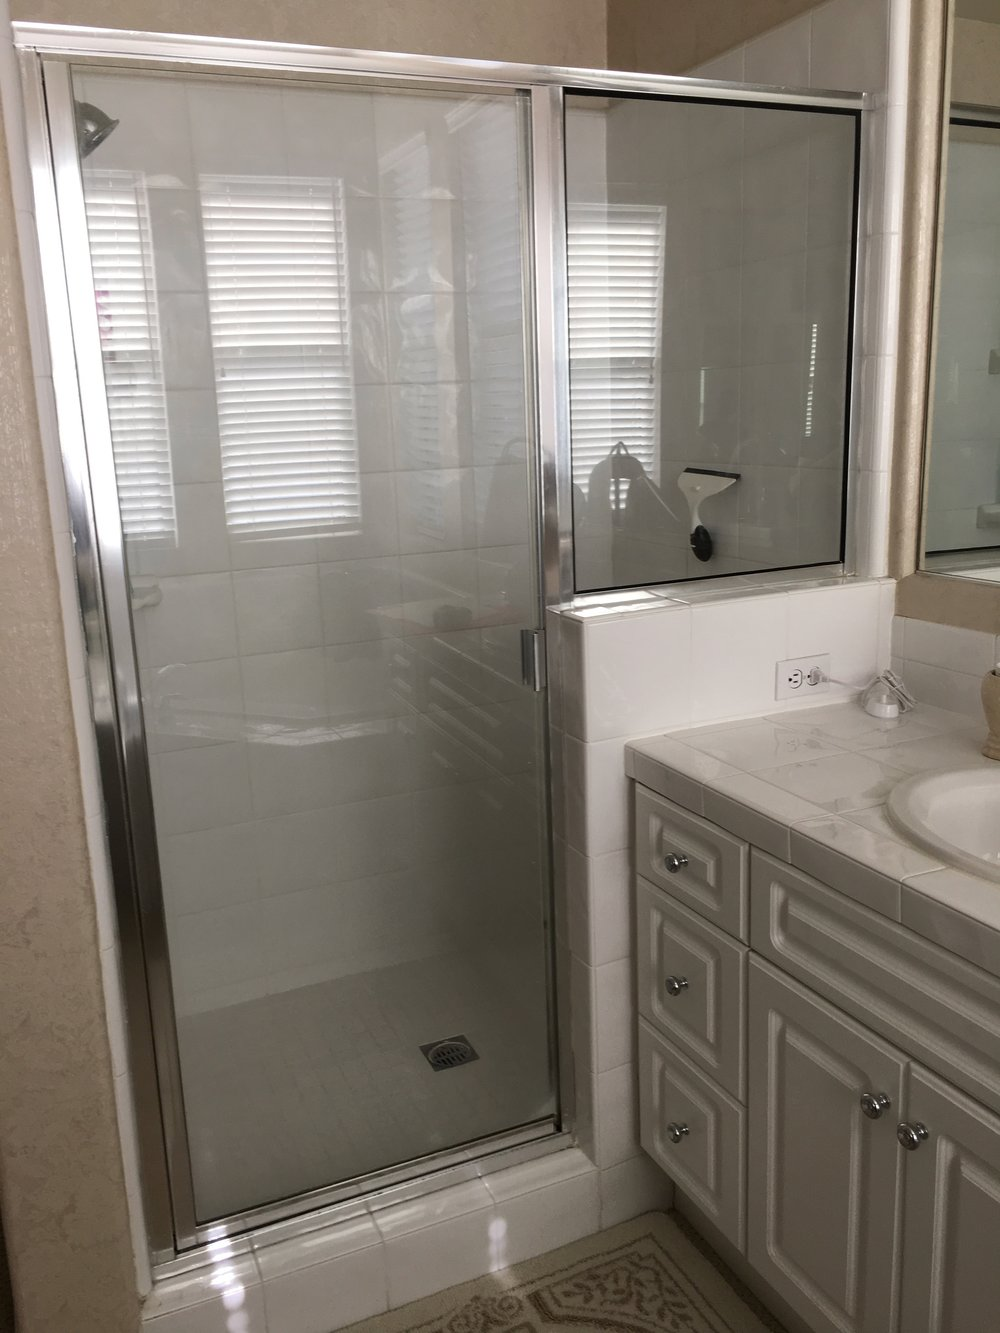 Clear glass shower enclosure with door and a notched panel with a chrome frame and hardware.